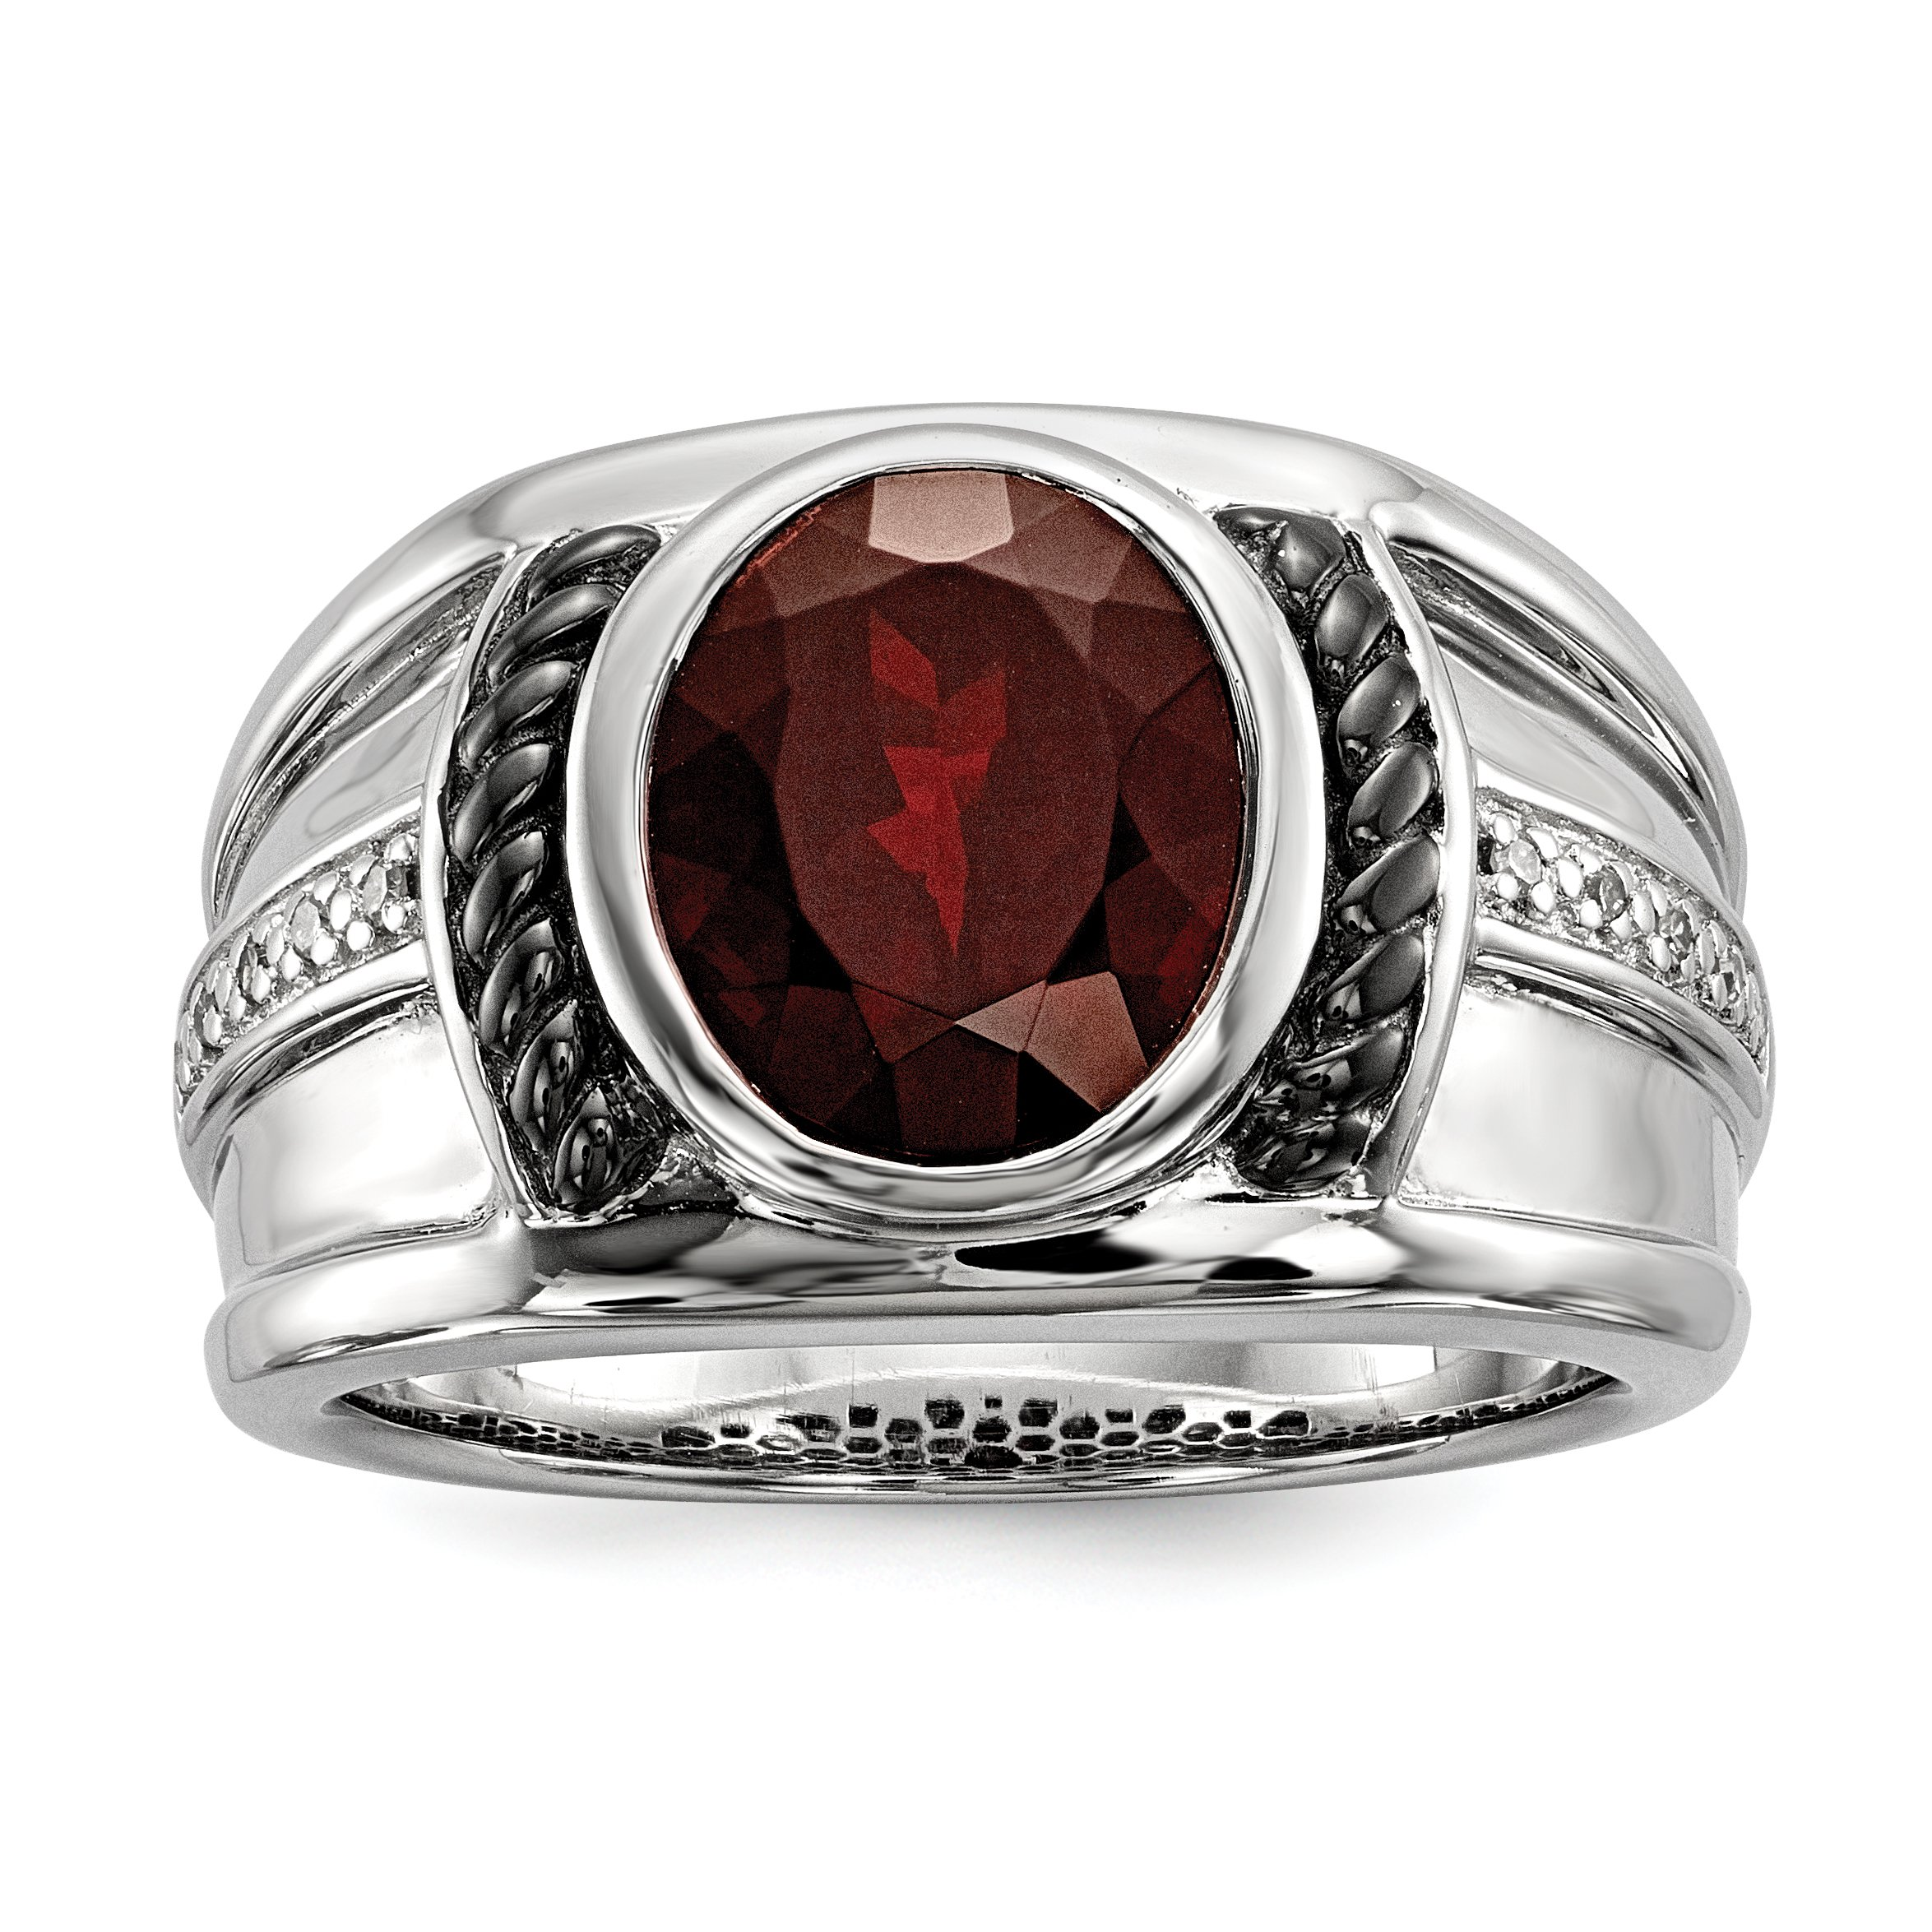 ICE CARATS 925 Sterling Silver Red Garnet Diamond Oval Black Mens Band Ring Size 9.00 Man Fine Jewelry Dad Mens Gift Set